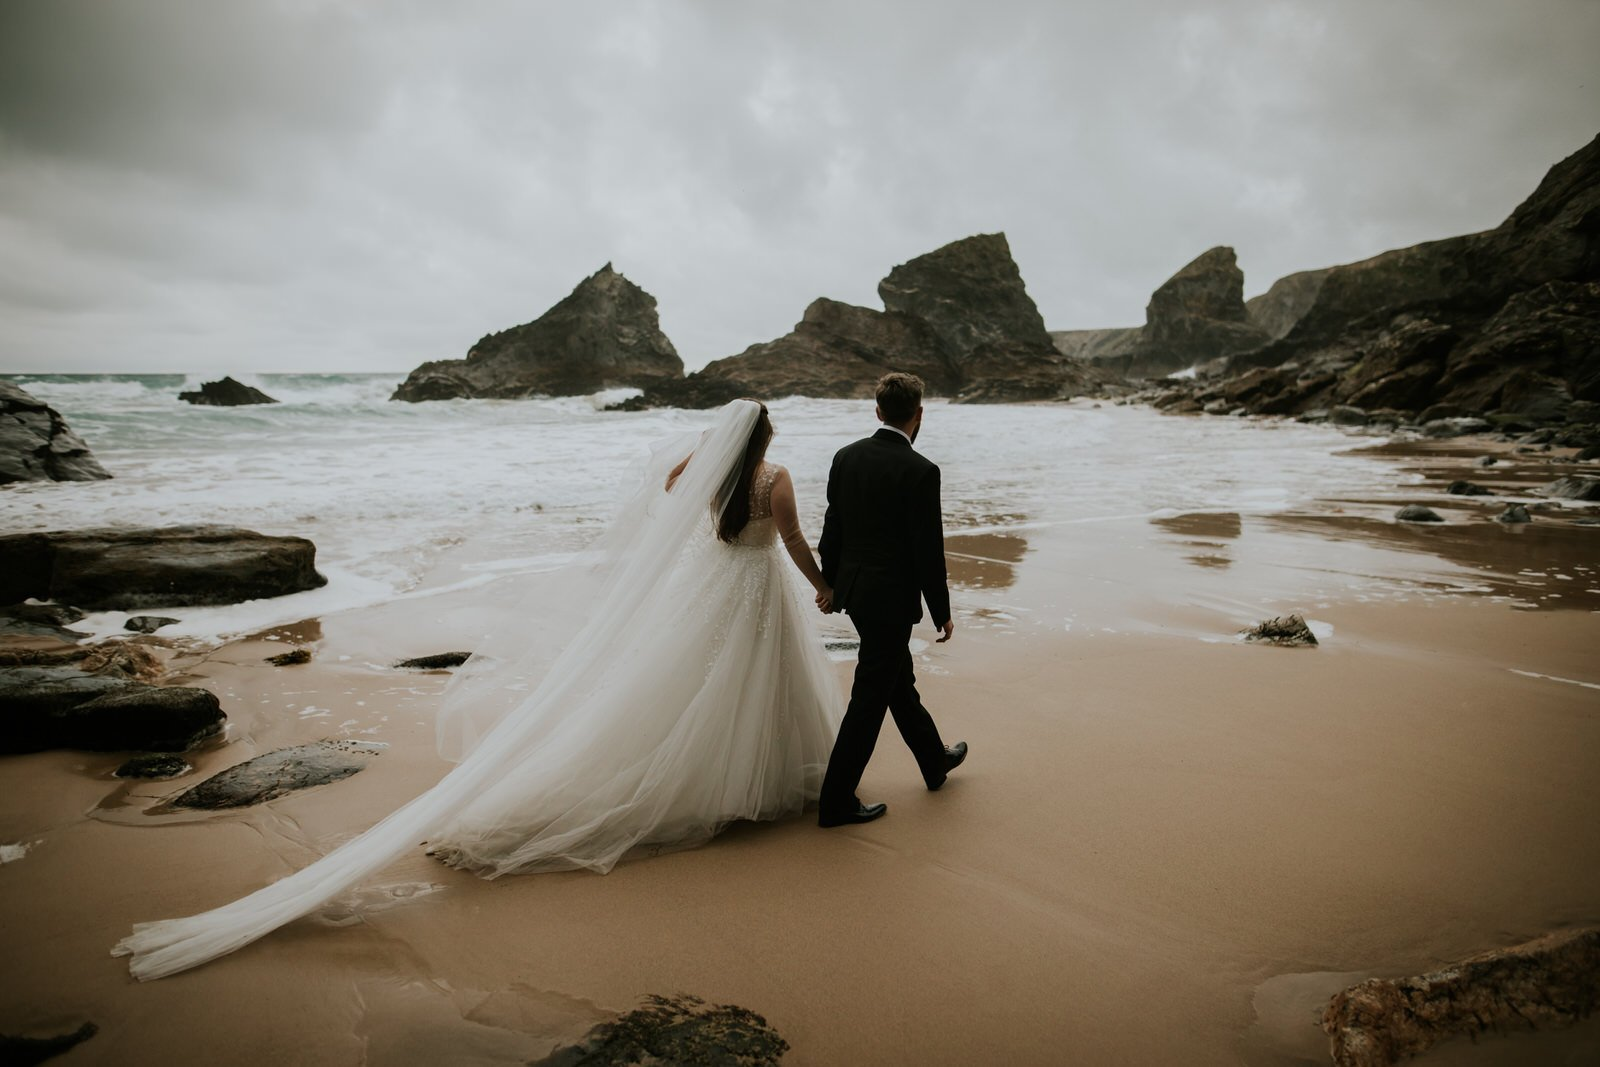 Packages Bride and groom walk hand in hand away from the camera into a wide open dramtic beach, filled with big sea stacks and a long white sandy beach